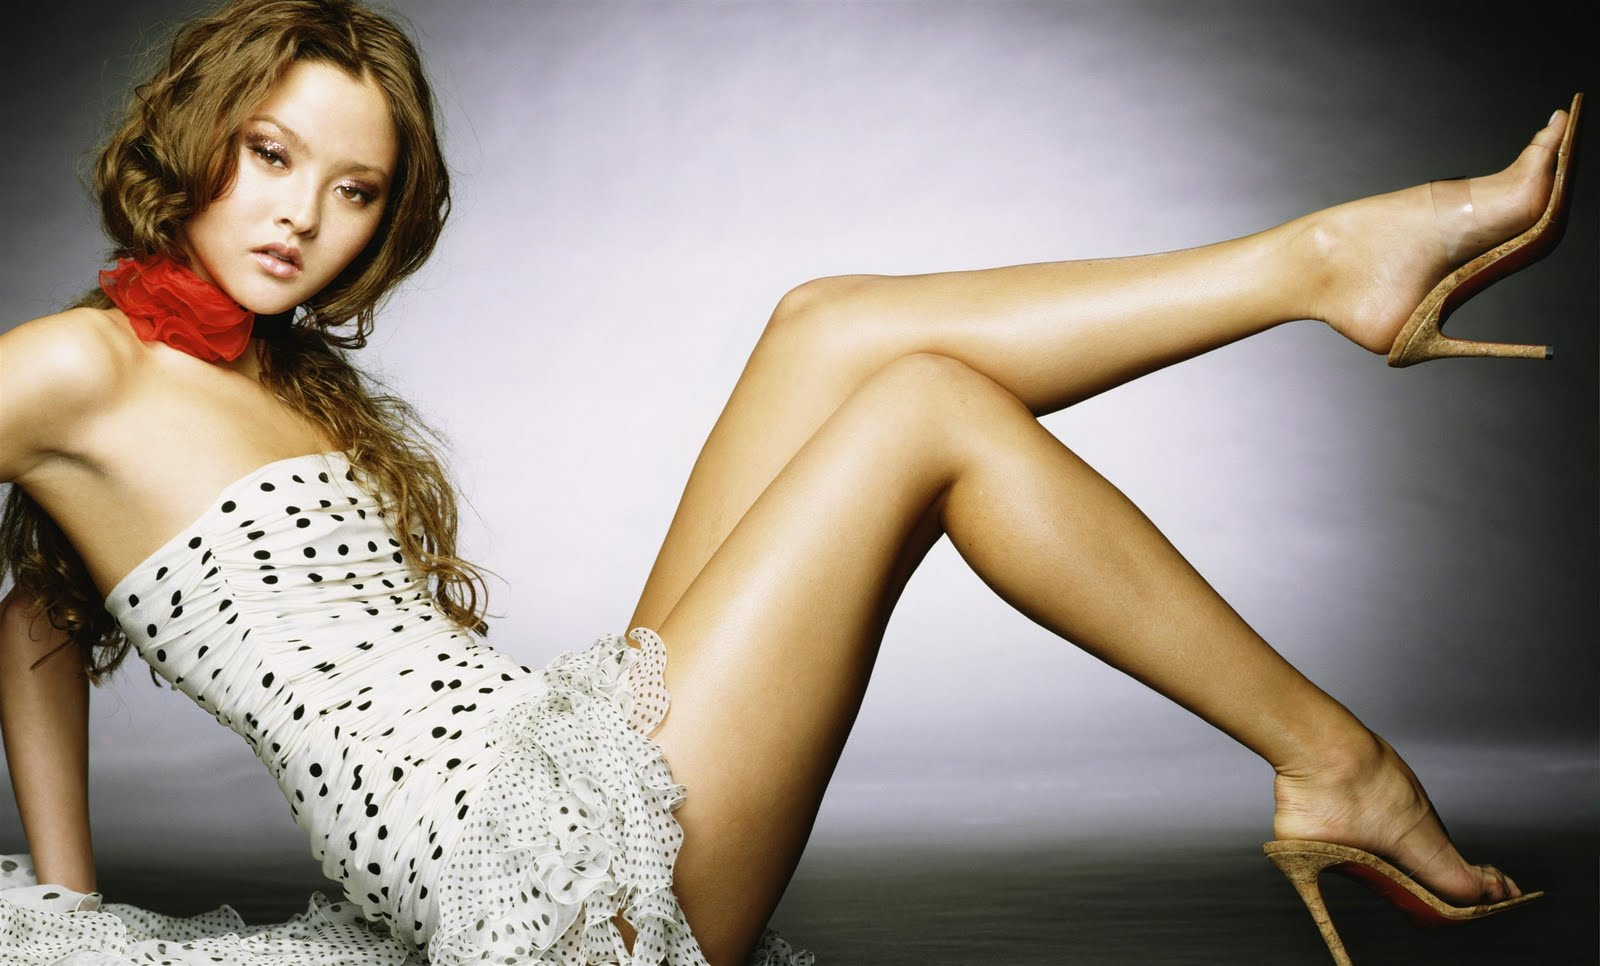 New Hot Devon Aoki Actresses Full HD Wallpaper Wallpaper